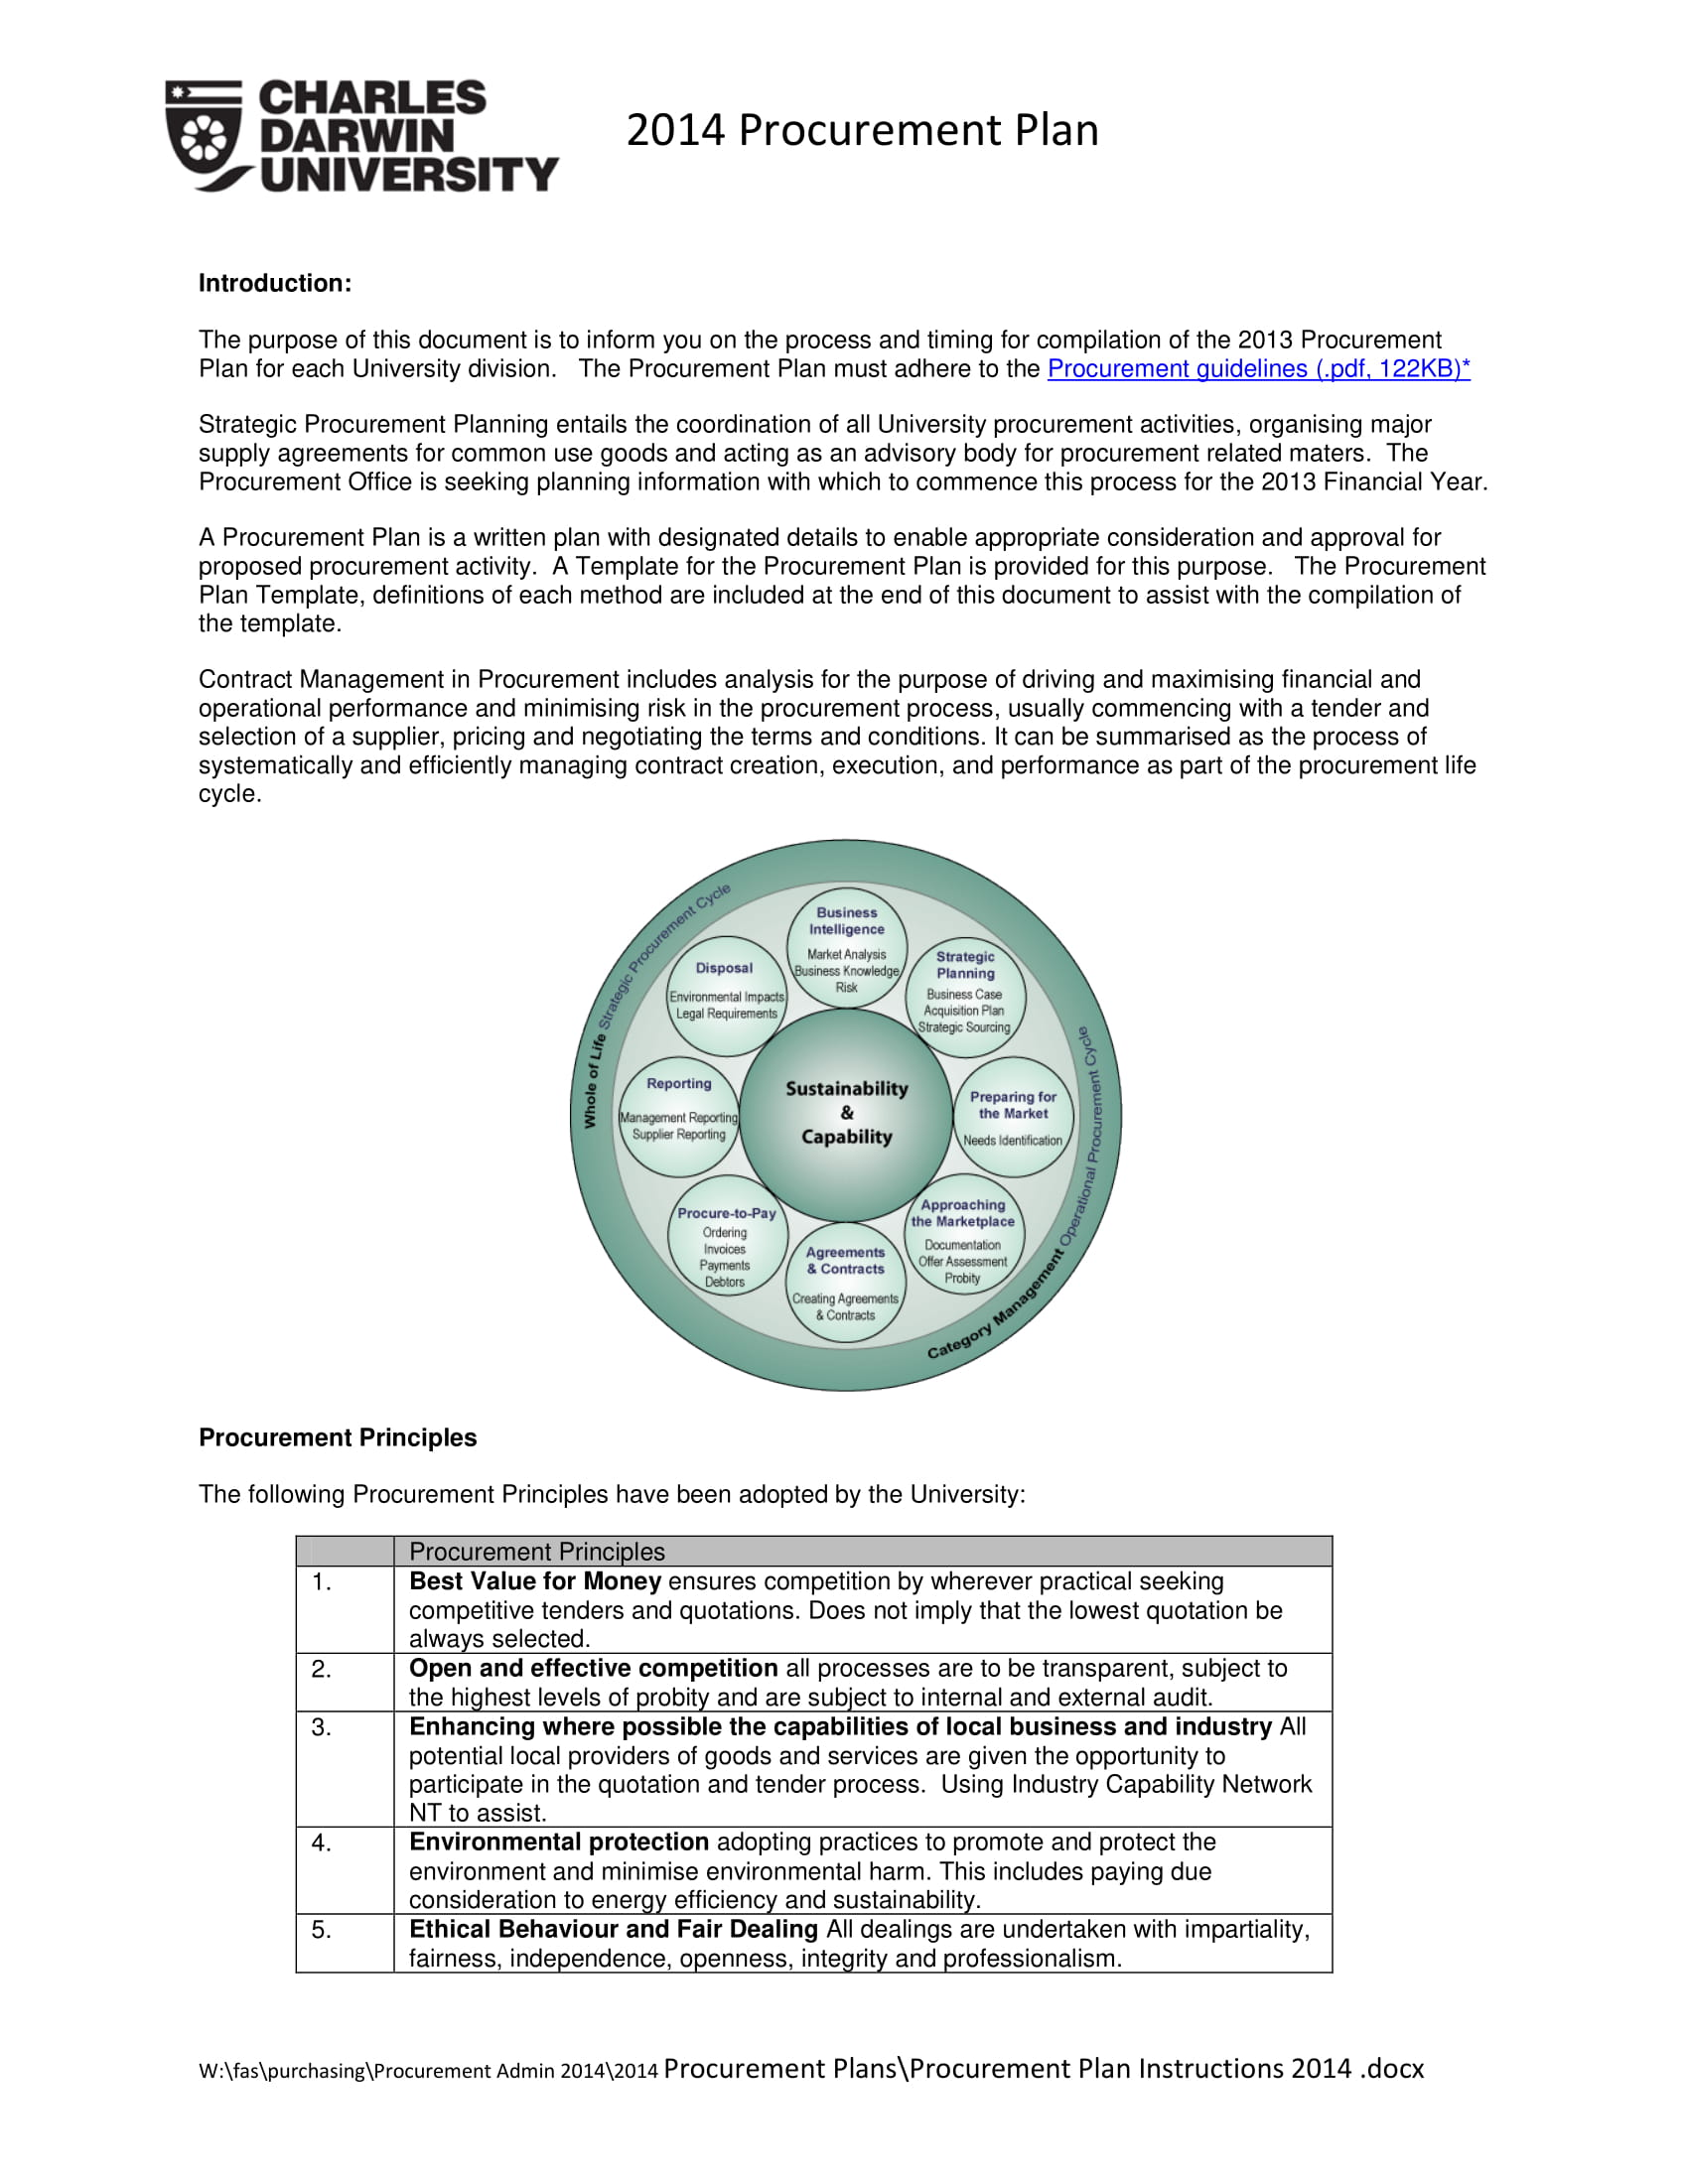 9+ Procurement Strategy Plan Examples - PDF